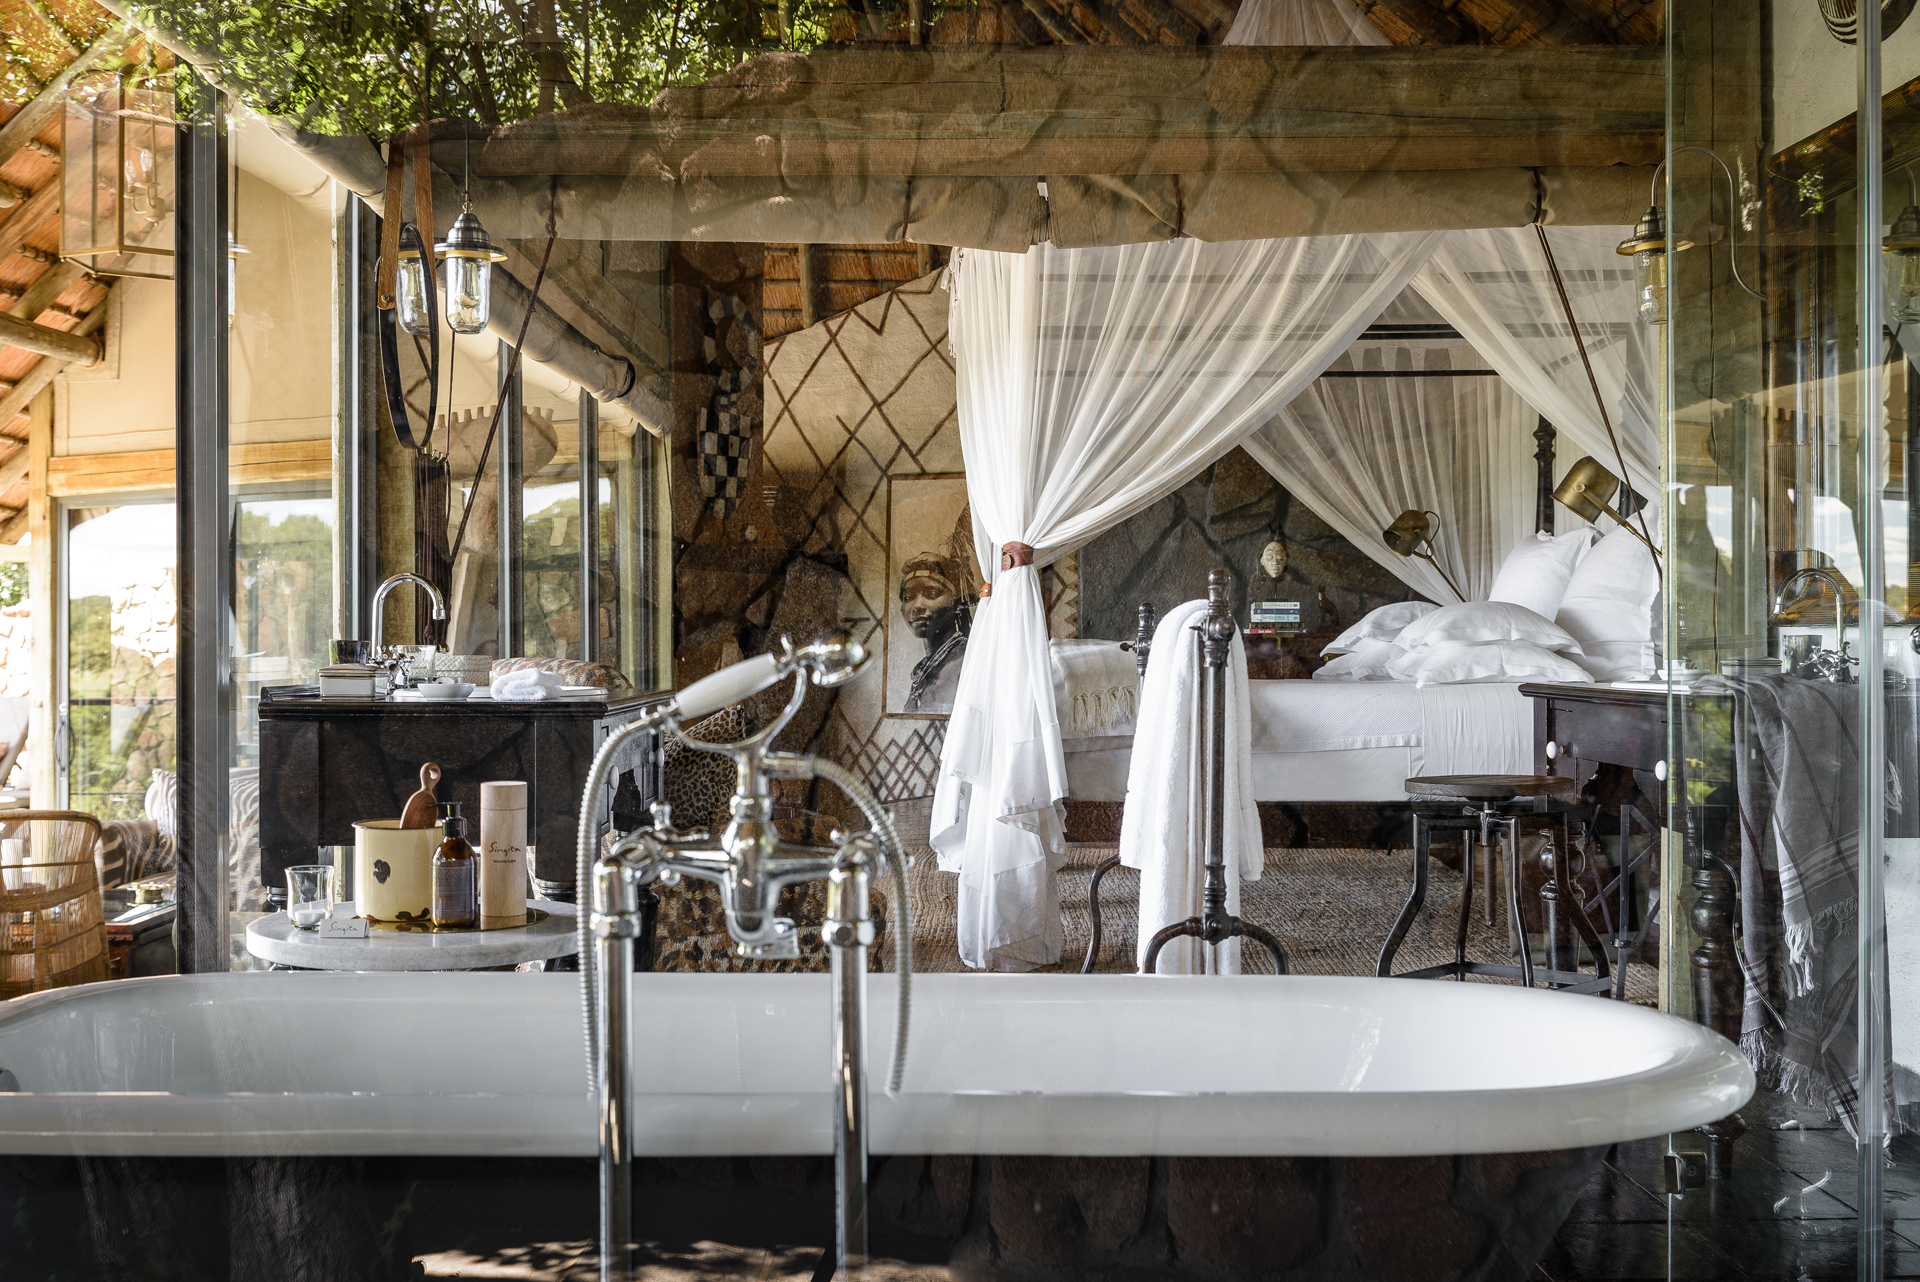 South Africa, Singita, Ebony Lodge